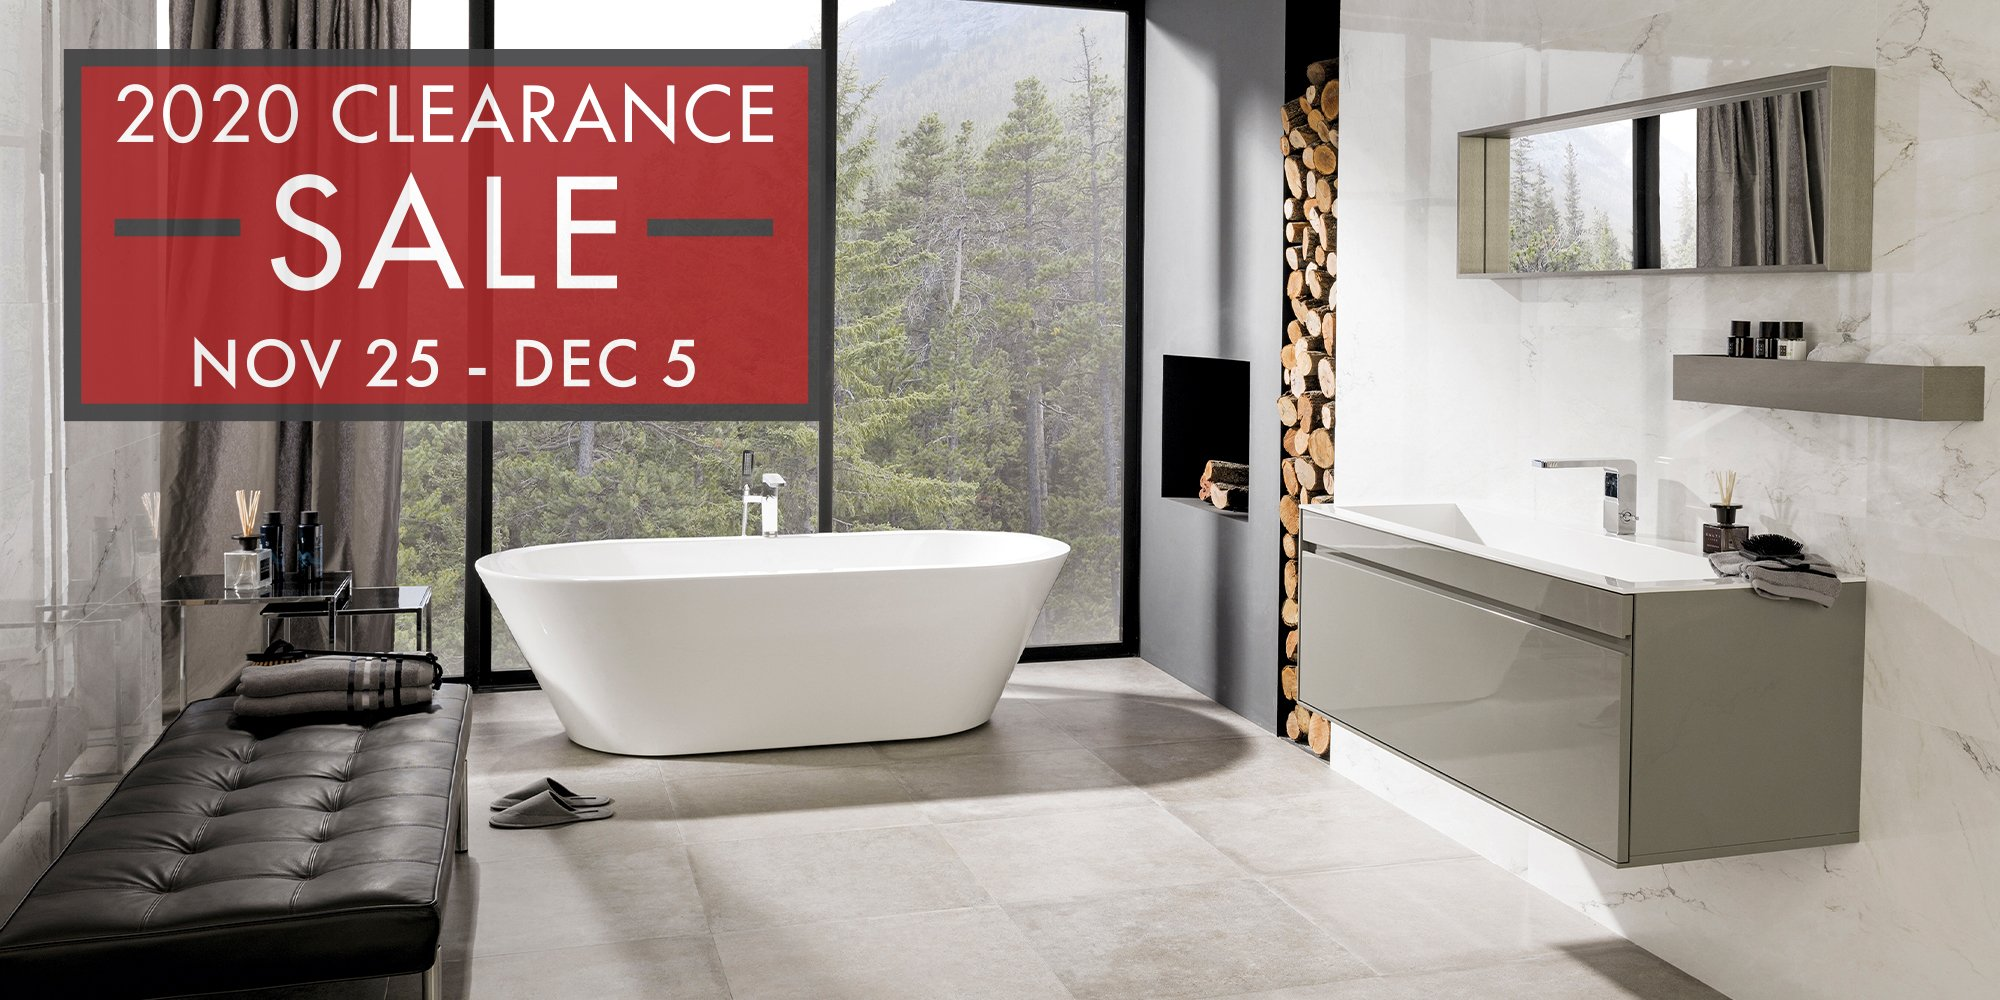 Porcelanosa Clearance Sale Visit Us And Save From 11 25 12 5